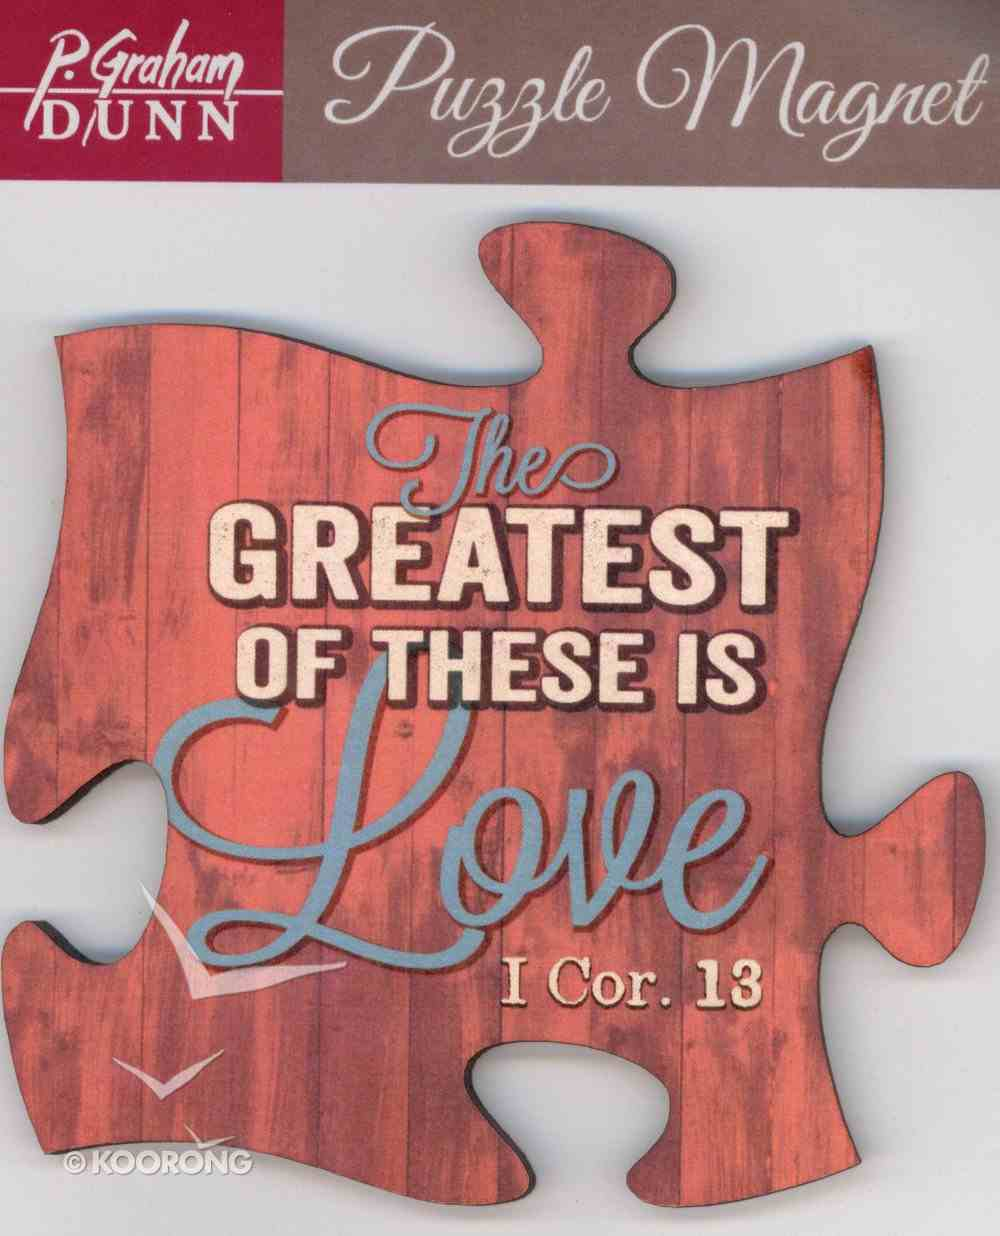 Puzzle Magnet: The Greatest of These is Love - 1 Cor 13 Novelty